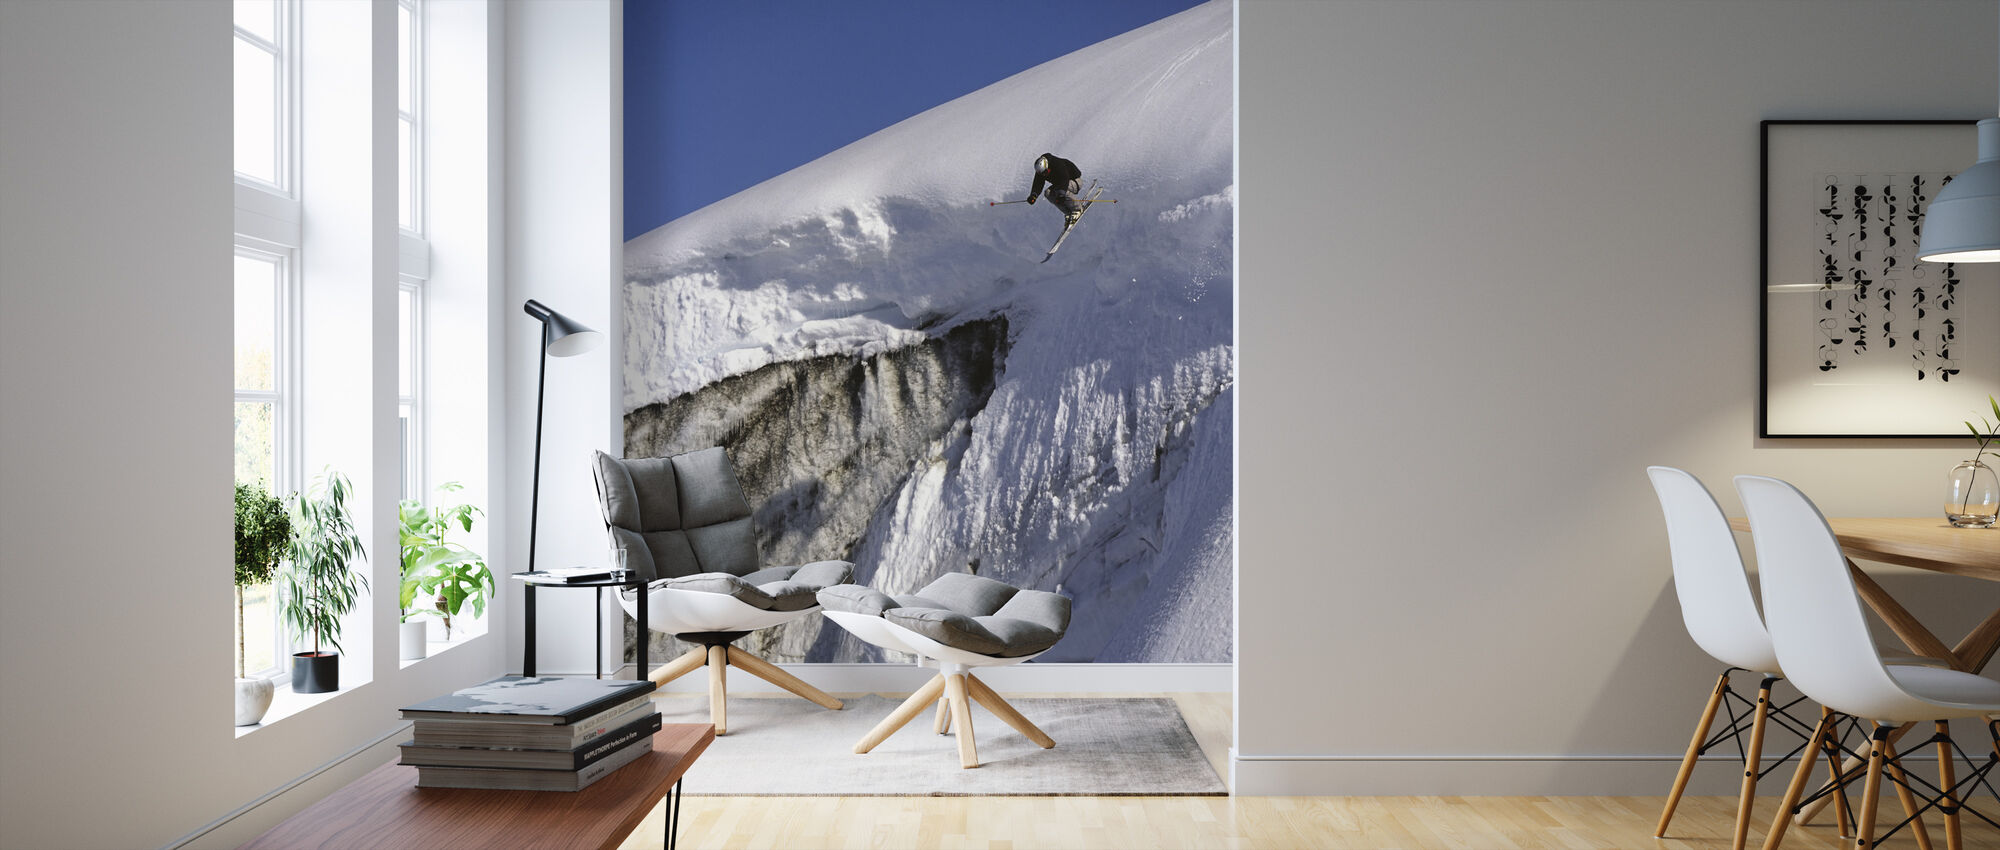 Skiing on the Apussuit Glacier - Wallpaper - Living Room